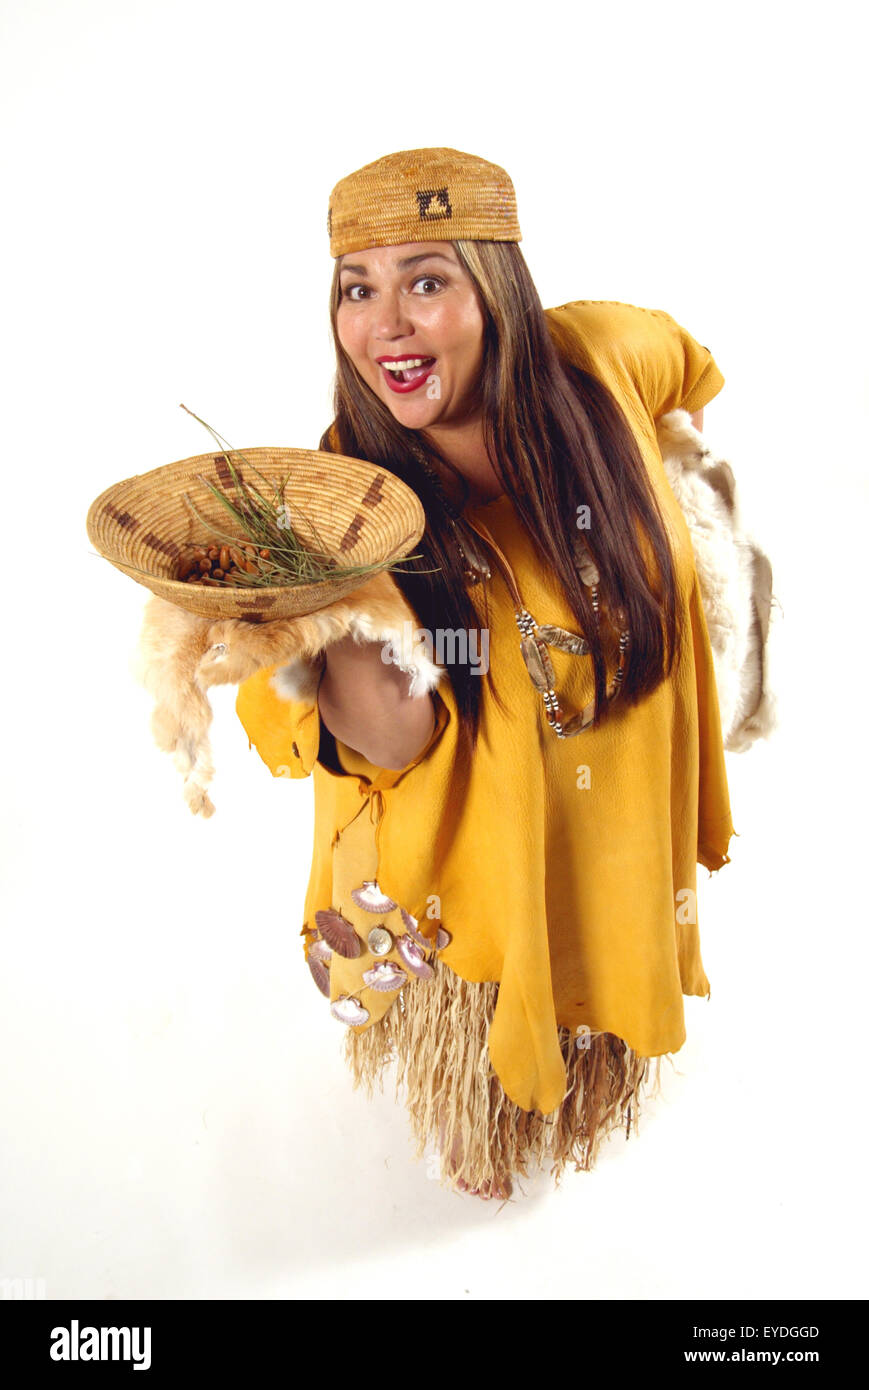 An Acjachemen or Juaneno Native American woman in traditional costume displays a basket of local produce in a basket